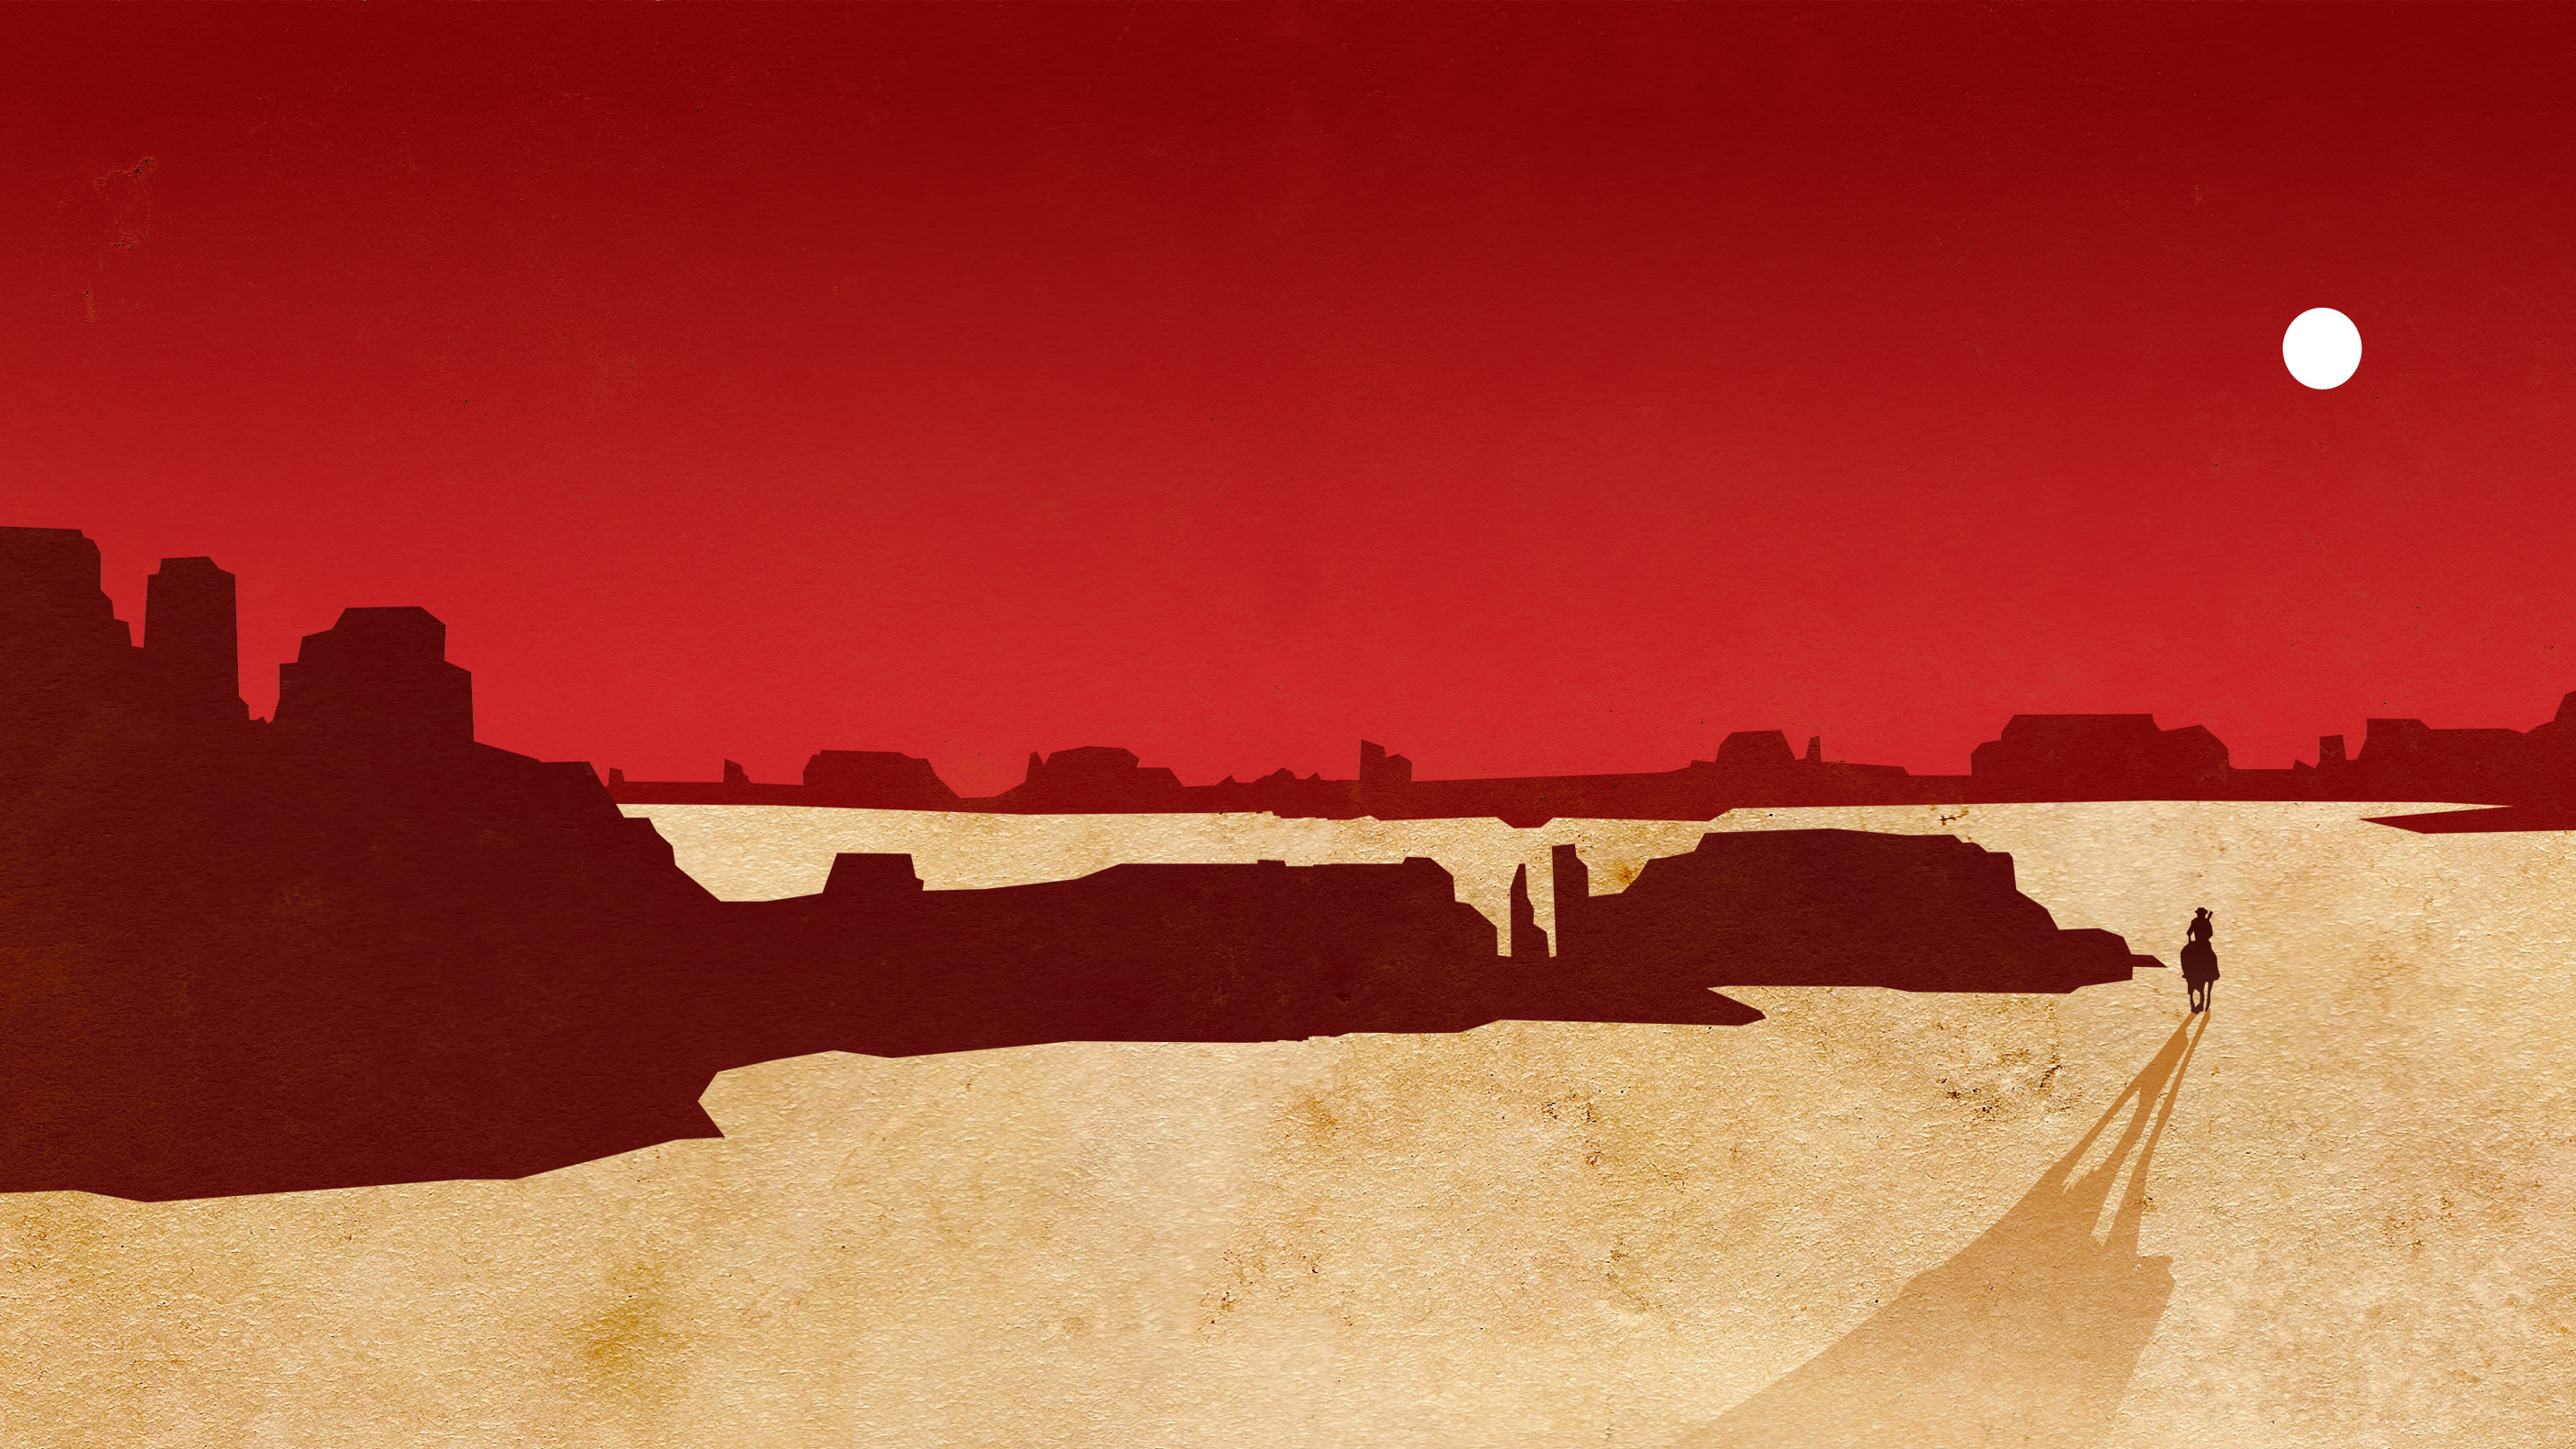 red-dead-redemption-red